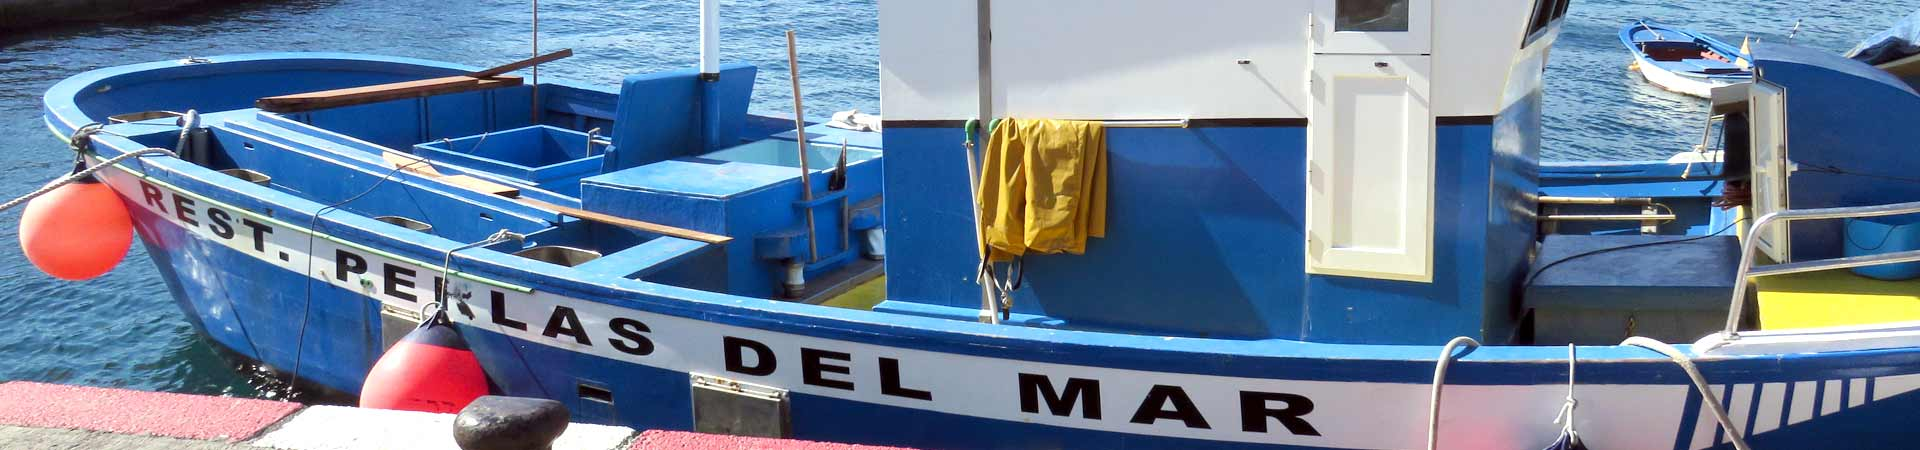 https://www.goodmorningtenerife.com/wp-content/uploads/2015/02/01_perlas-del-mar_slide-1920x450.jpg